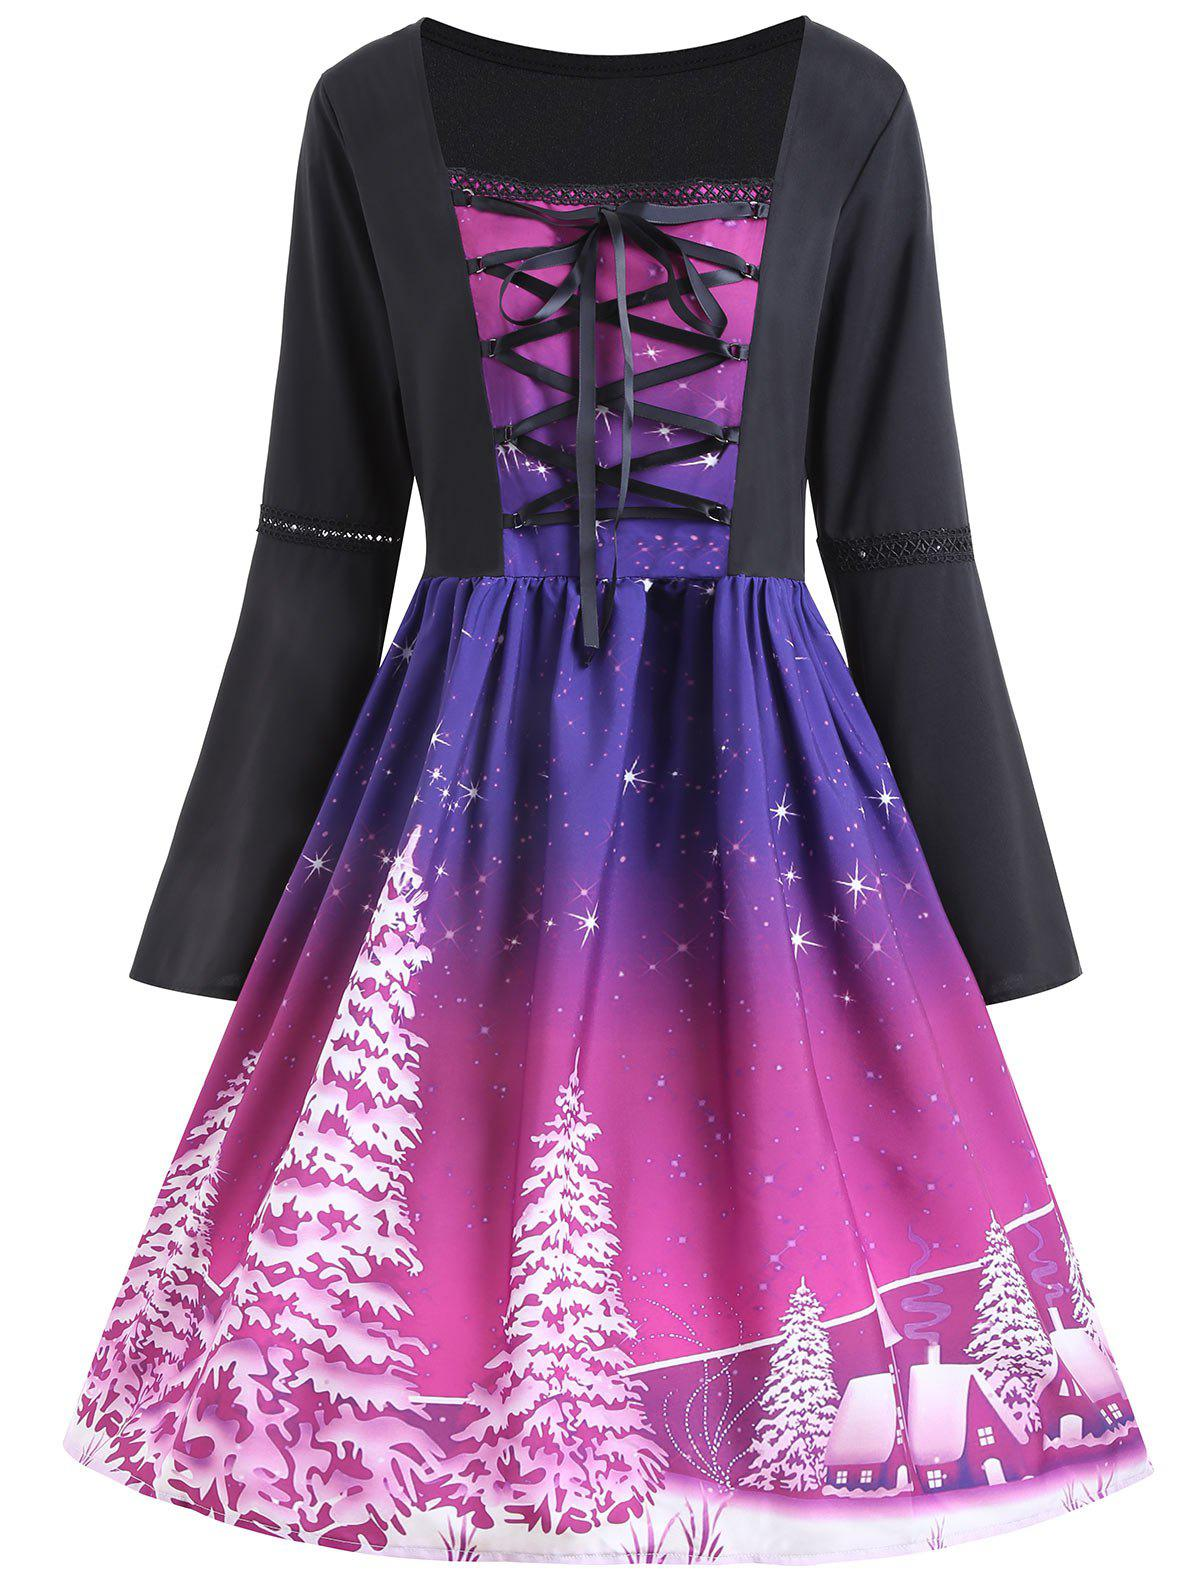 Christmas Tree Print Plus Size Lace Up DressWOMEN<br><br>Size: 2XL; Color: PURPLE; Style: Vintage; Material: Cotton,Polyester; Silhouette: A-Line; Dresses Length: Knee-Length; Neckline: Square Collar; Sleeve Type: Flare Sleeve; Sleeve Length: Long Sleeves; Embellishment: Criss-Cross,Lace; Pattern Type: Plant; With Belt: No; Season: Fall,Spring; Weight: 0.3200kg; Package Contents: 1 x Dress;